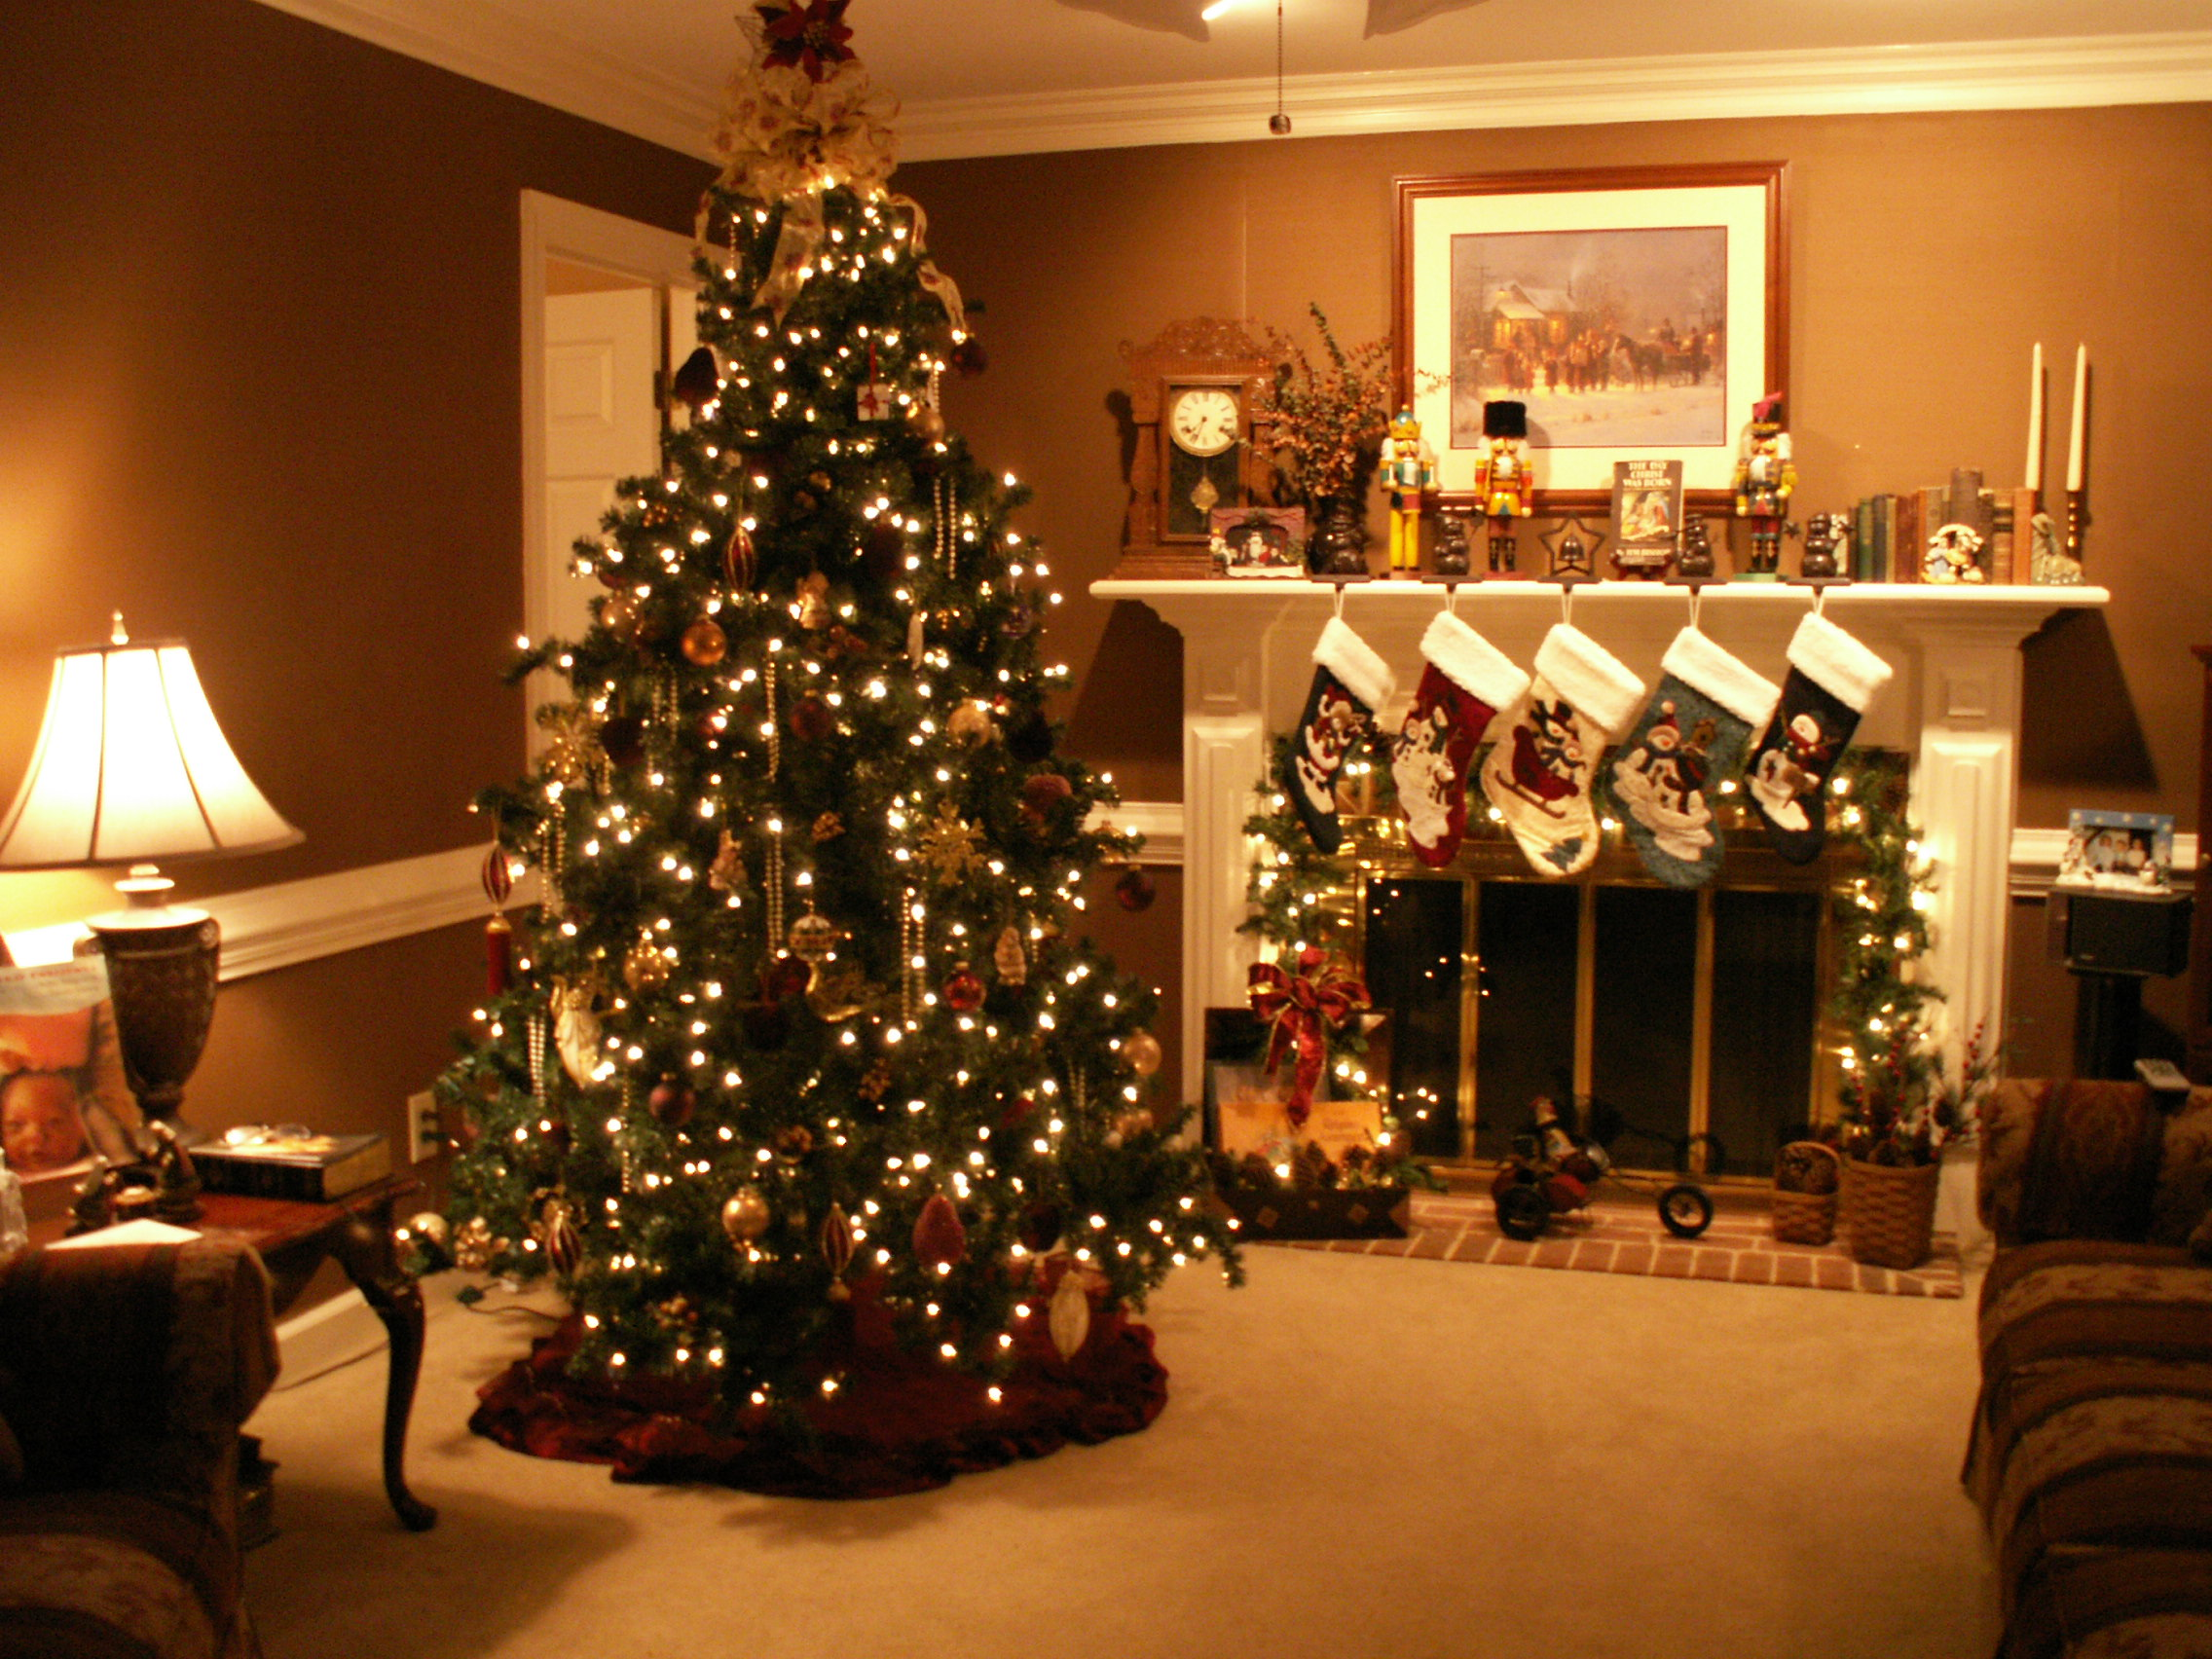 Christmas Fireplace Fire Holiday Festive Decorations 4